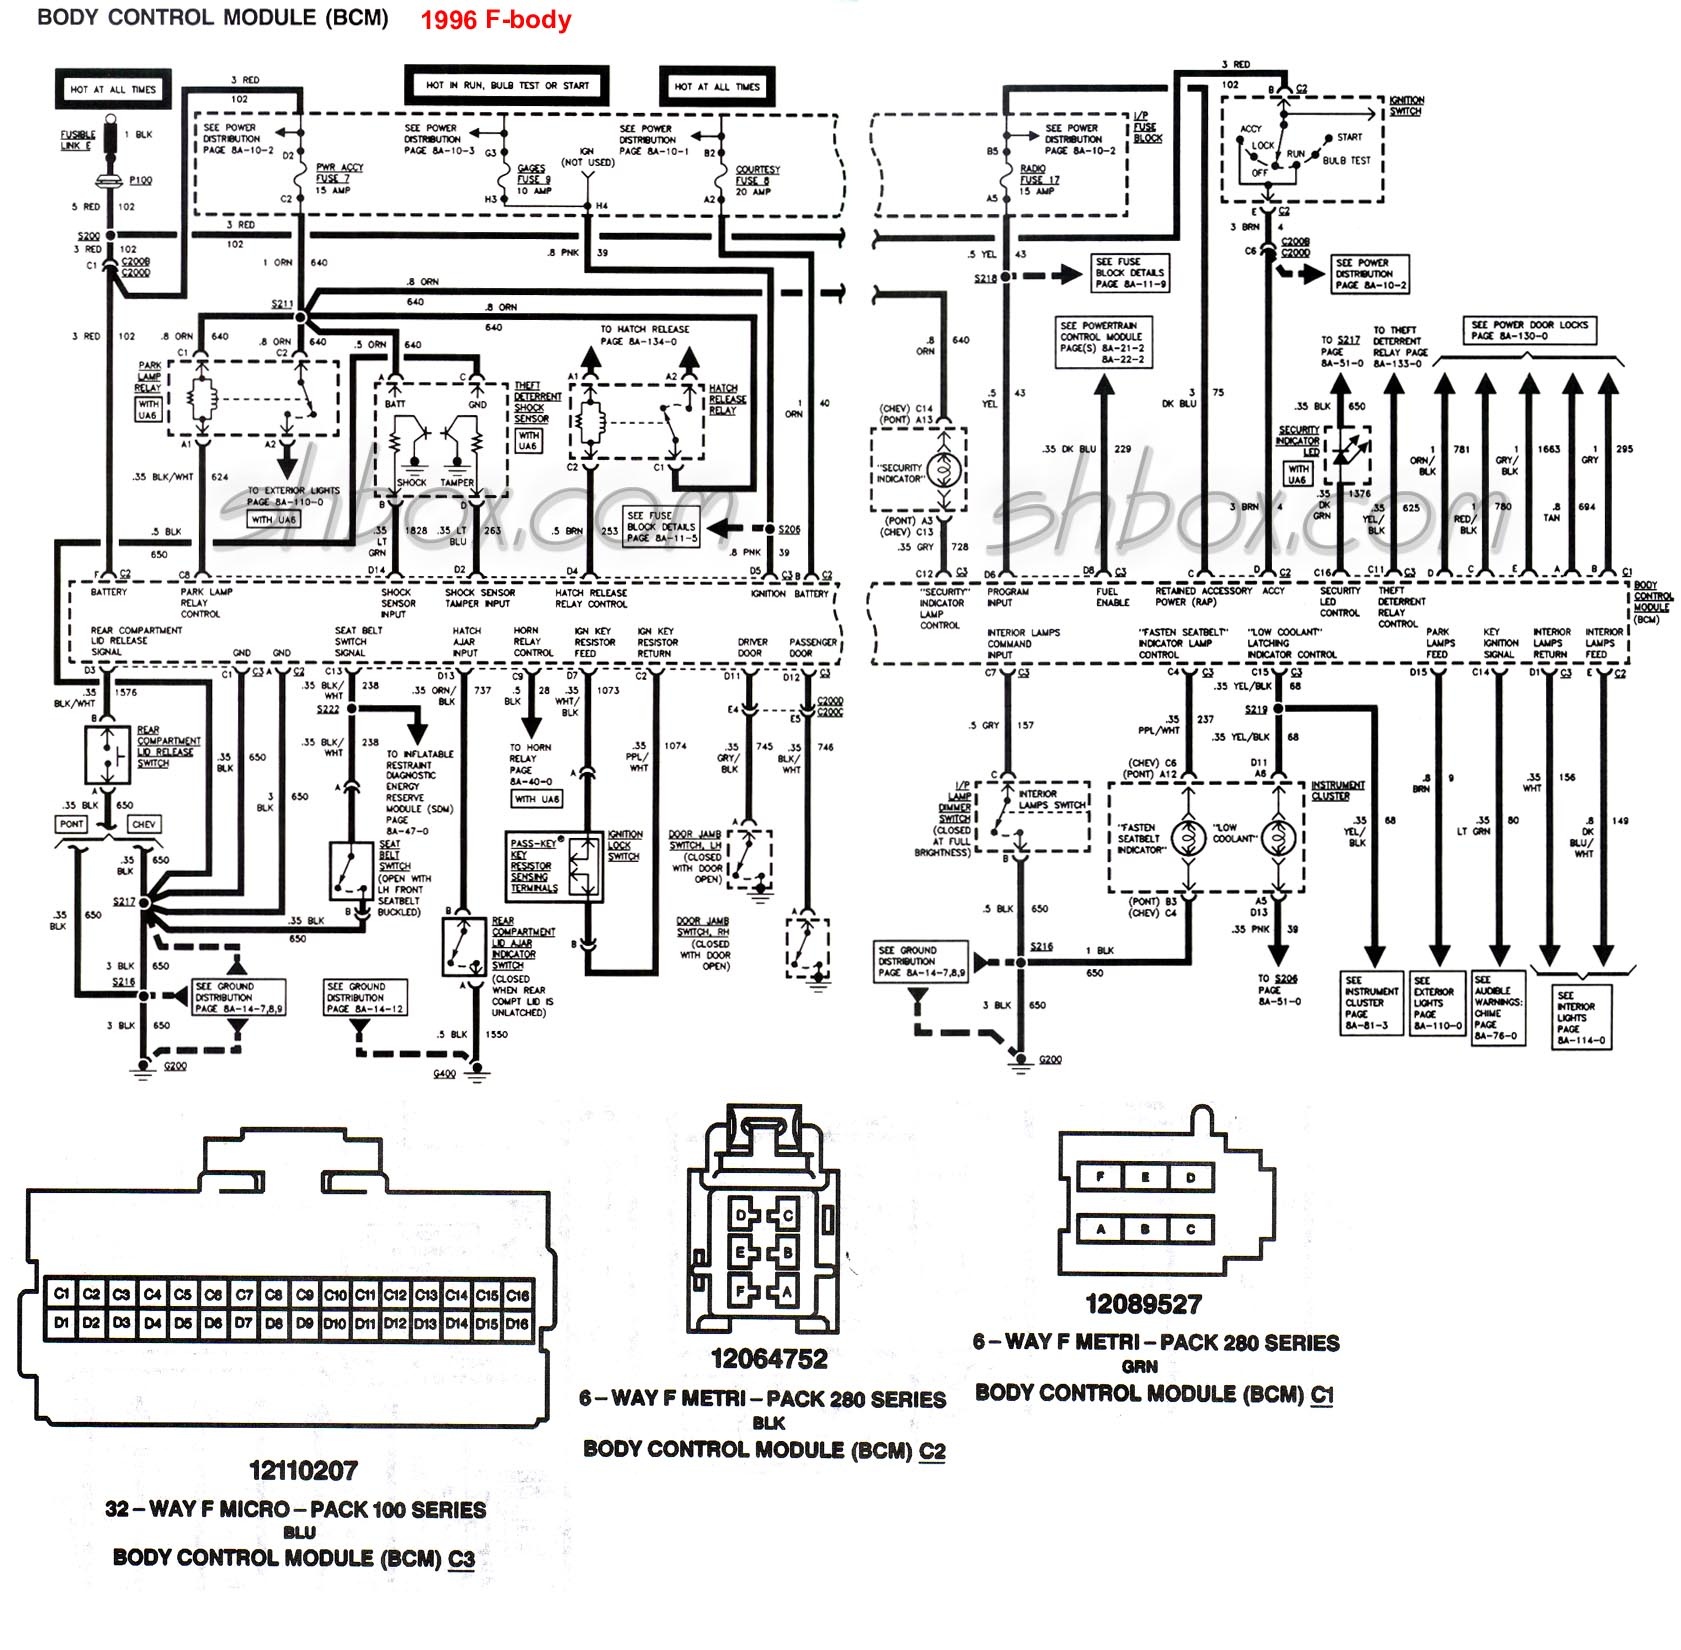 hight resolution of chevy 4x4 transmission wiring harness diagram for 1996 wiring rh macro program com 1996 chevy k1500